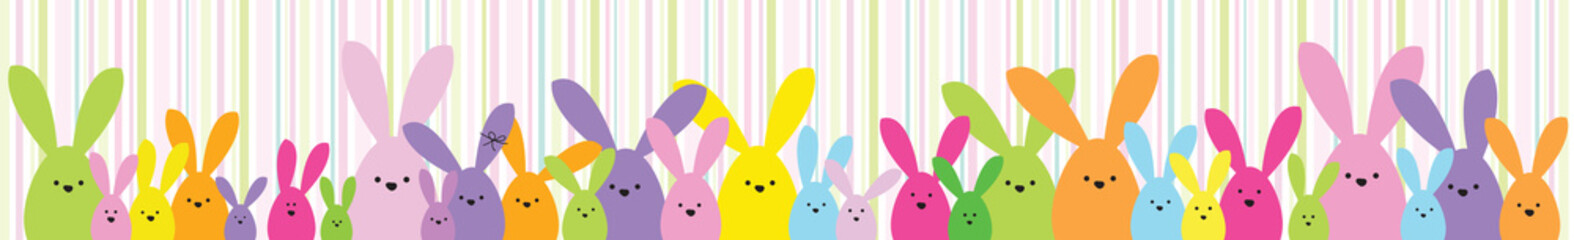 Easter banner. Happy Easter bunny family. Design element.